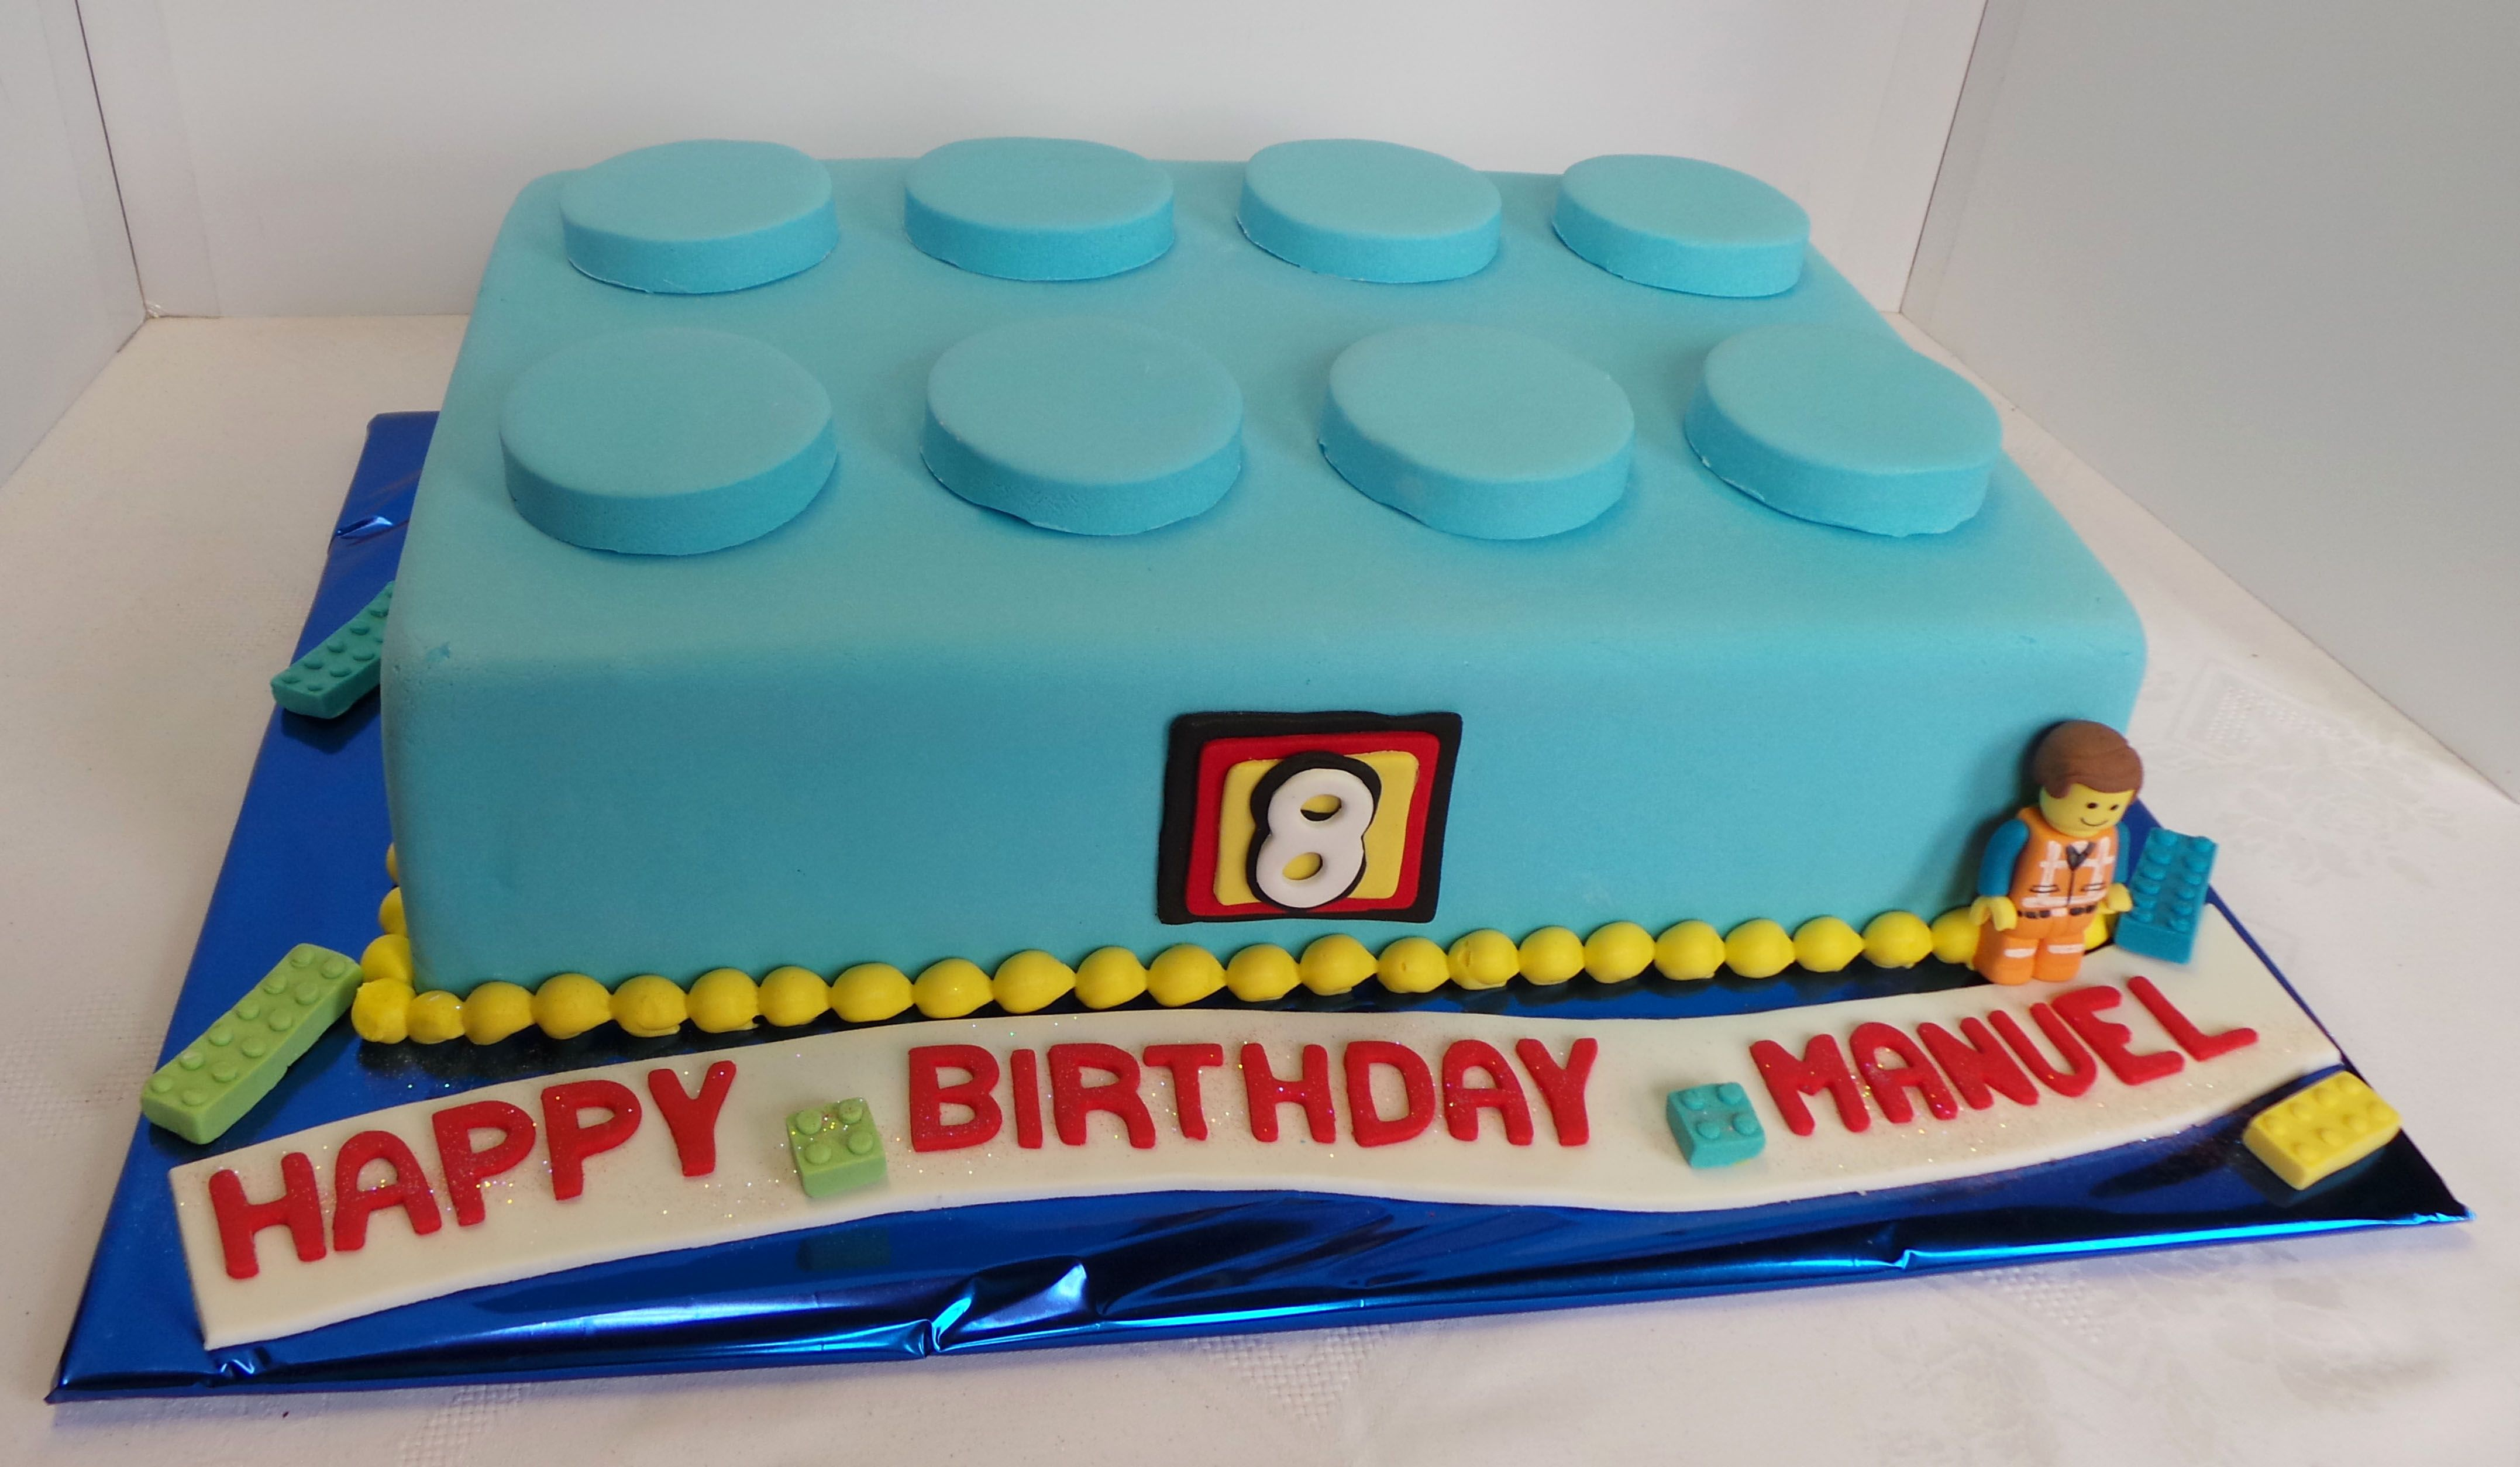 Lego Themed Sheet Cake Design Was Brought In By Client By Unknown Cake Artist We Just Added T Birthday Cake Kids Lego Birthday Party Lego Star Wars Birthday